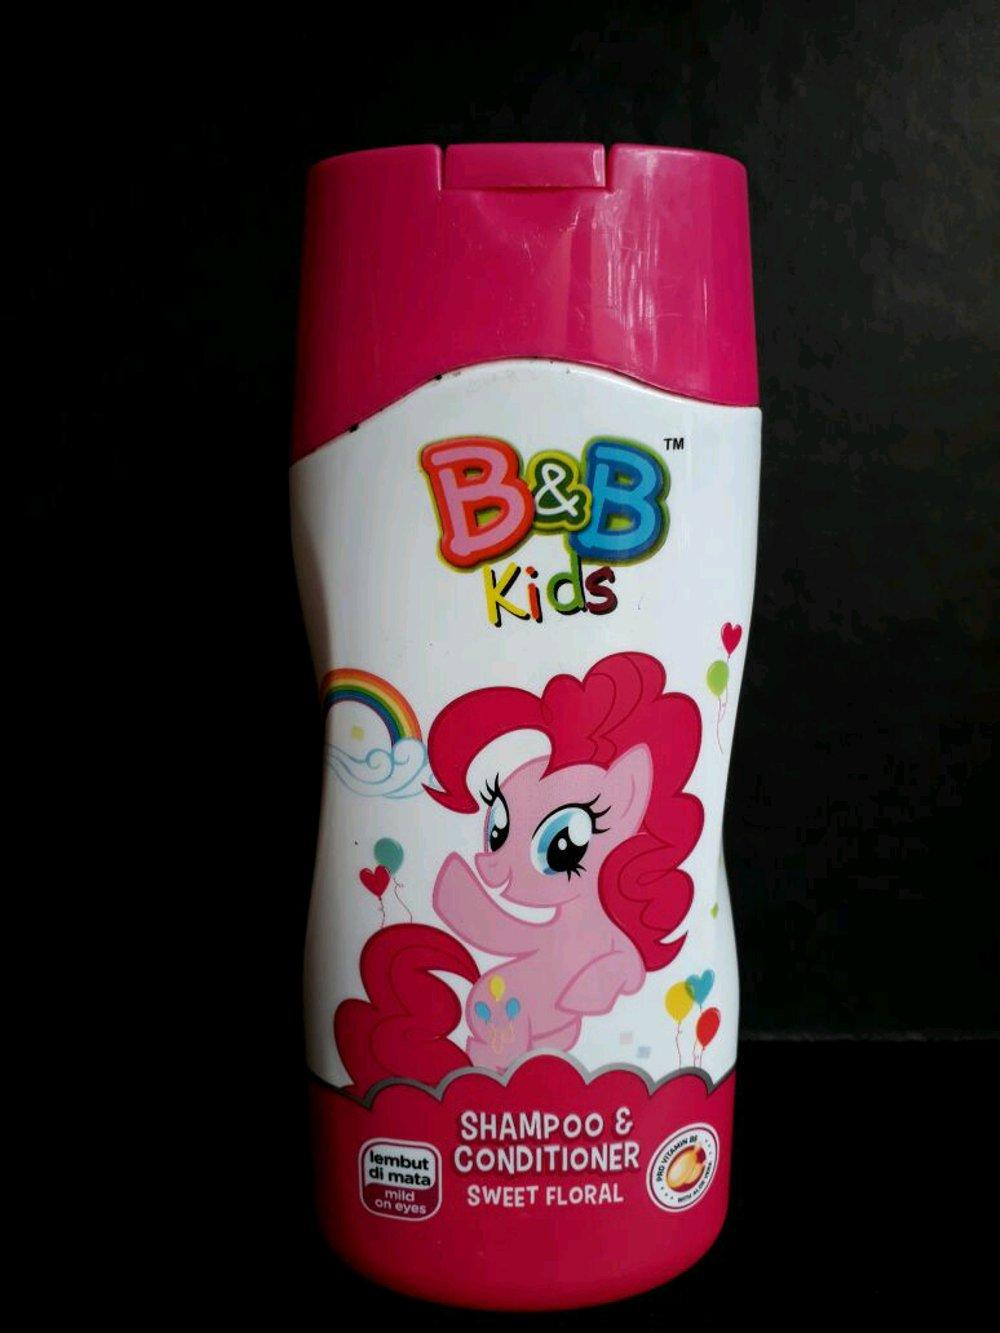 Buy Sell Cheapest Natural Kids Conditioner Best Quality Product Suave 2 In 1 Smoothers Shampoo And 665 Ml Bb